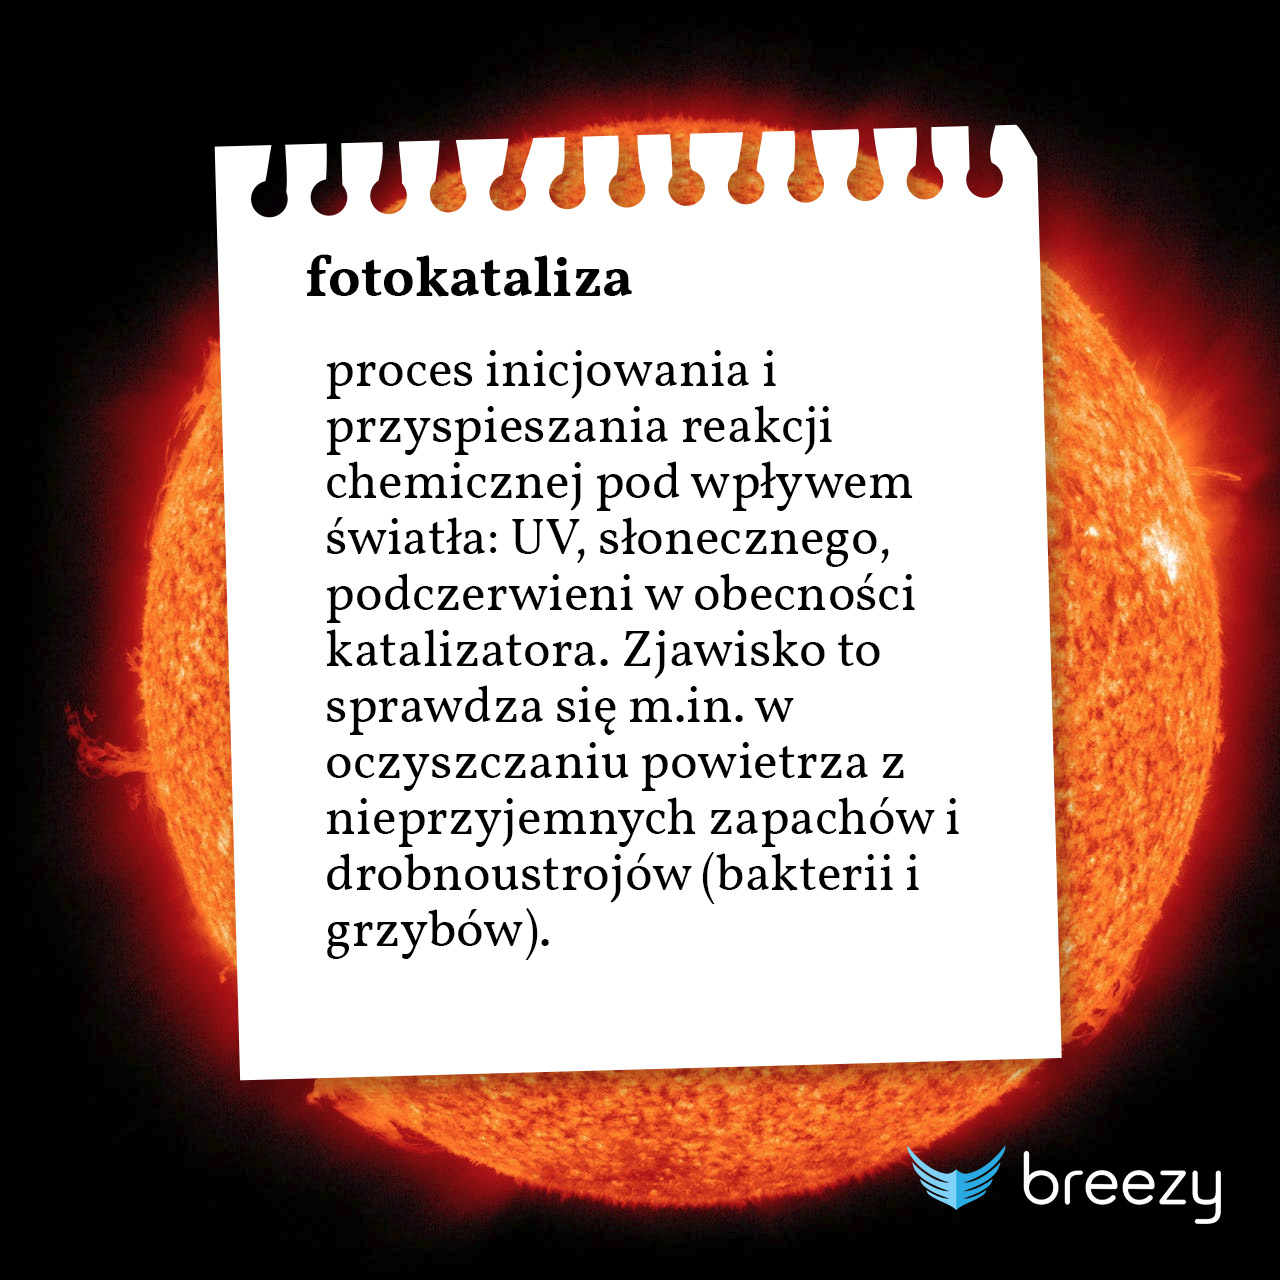 Fotokataliza? A co to takiego?